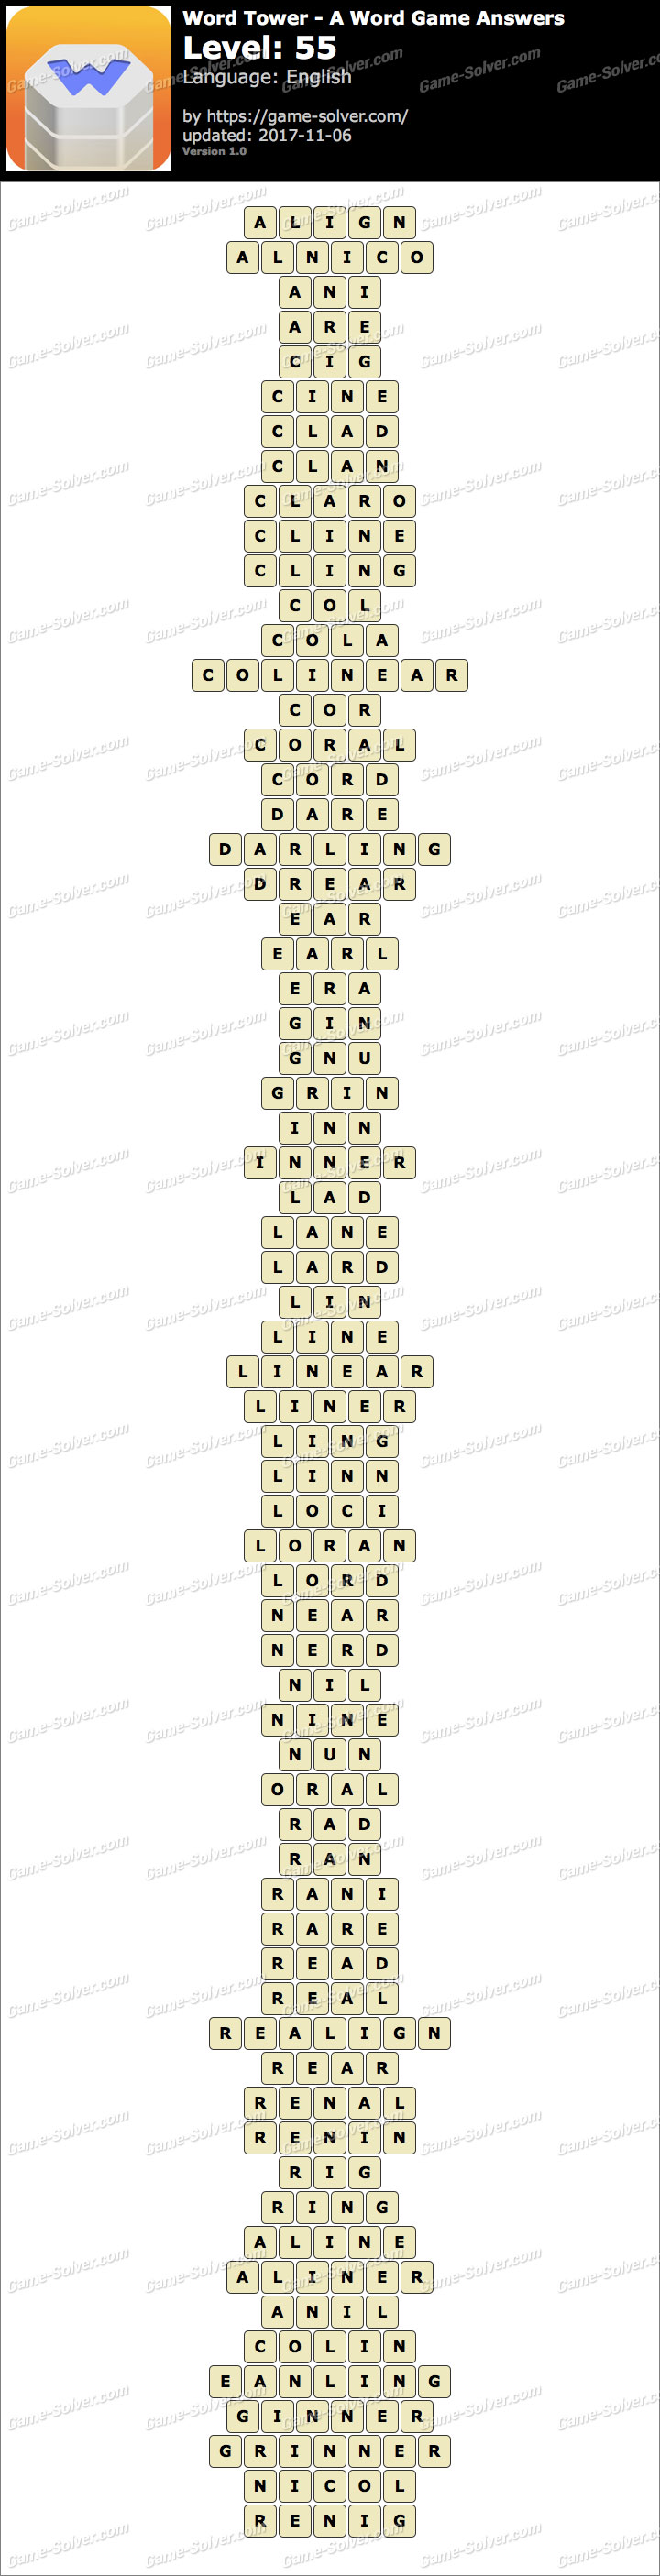 Word Tower Level 55 Answers